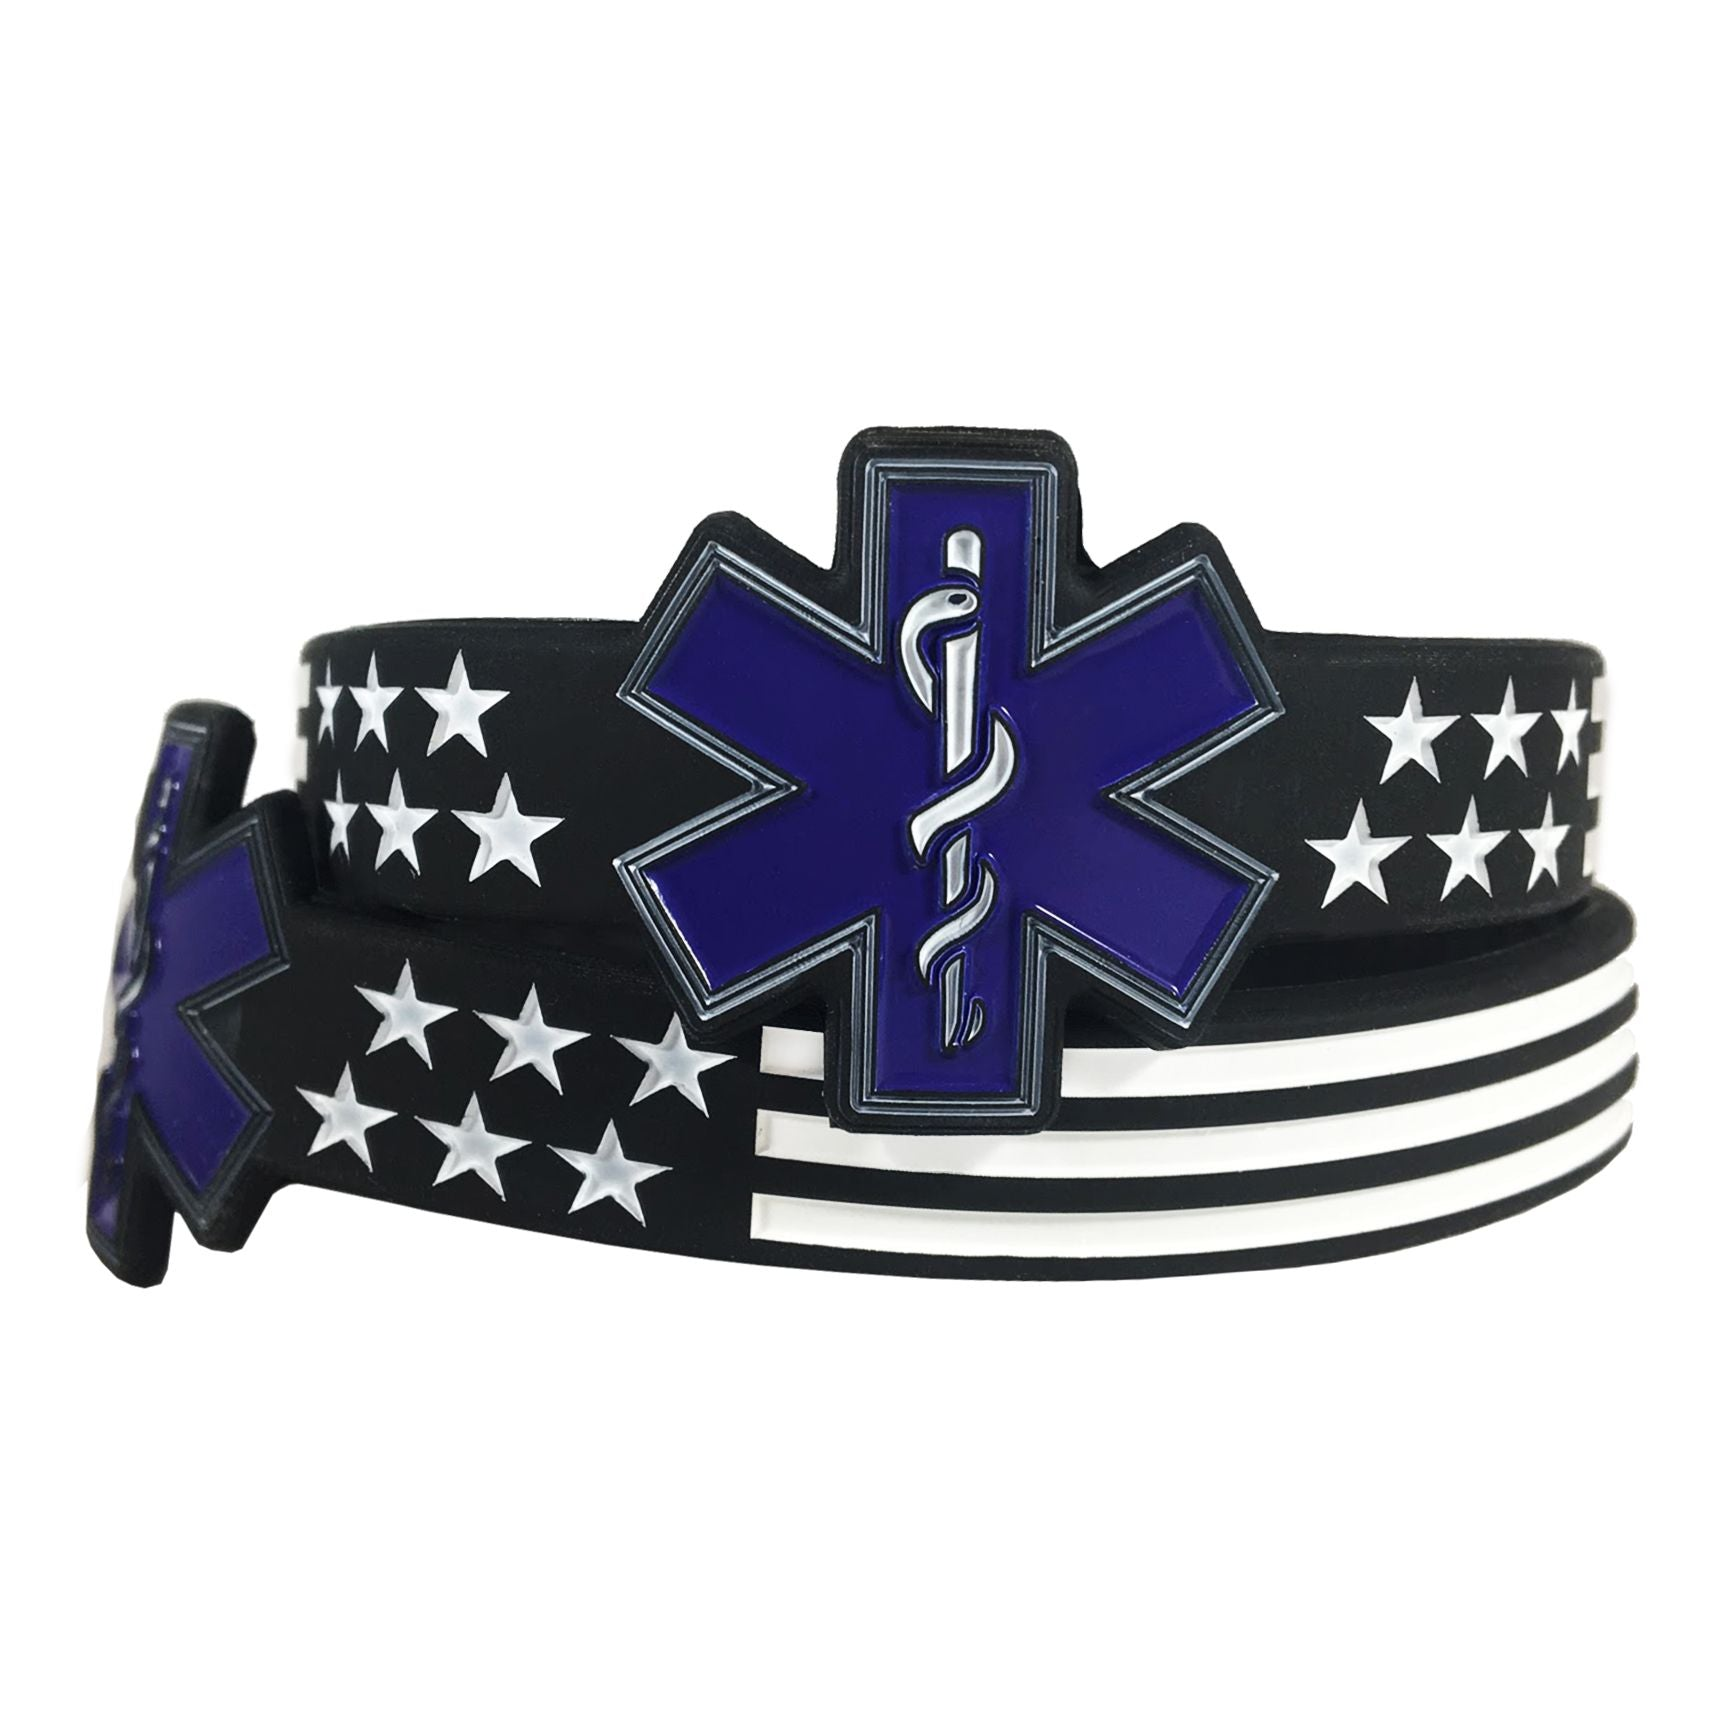 for bracelet lives with law enforcement thin blue the matter line your show pin support jewelry